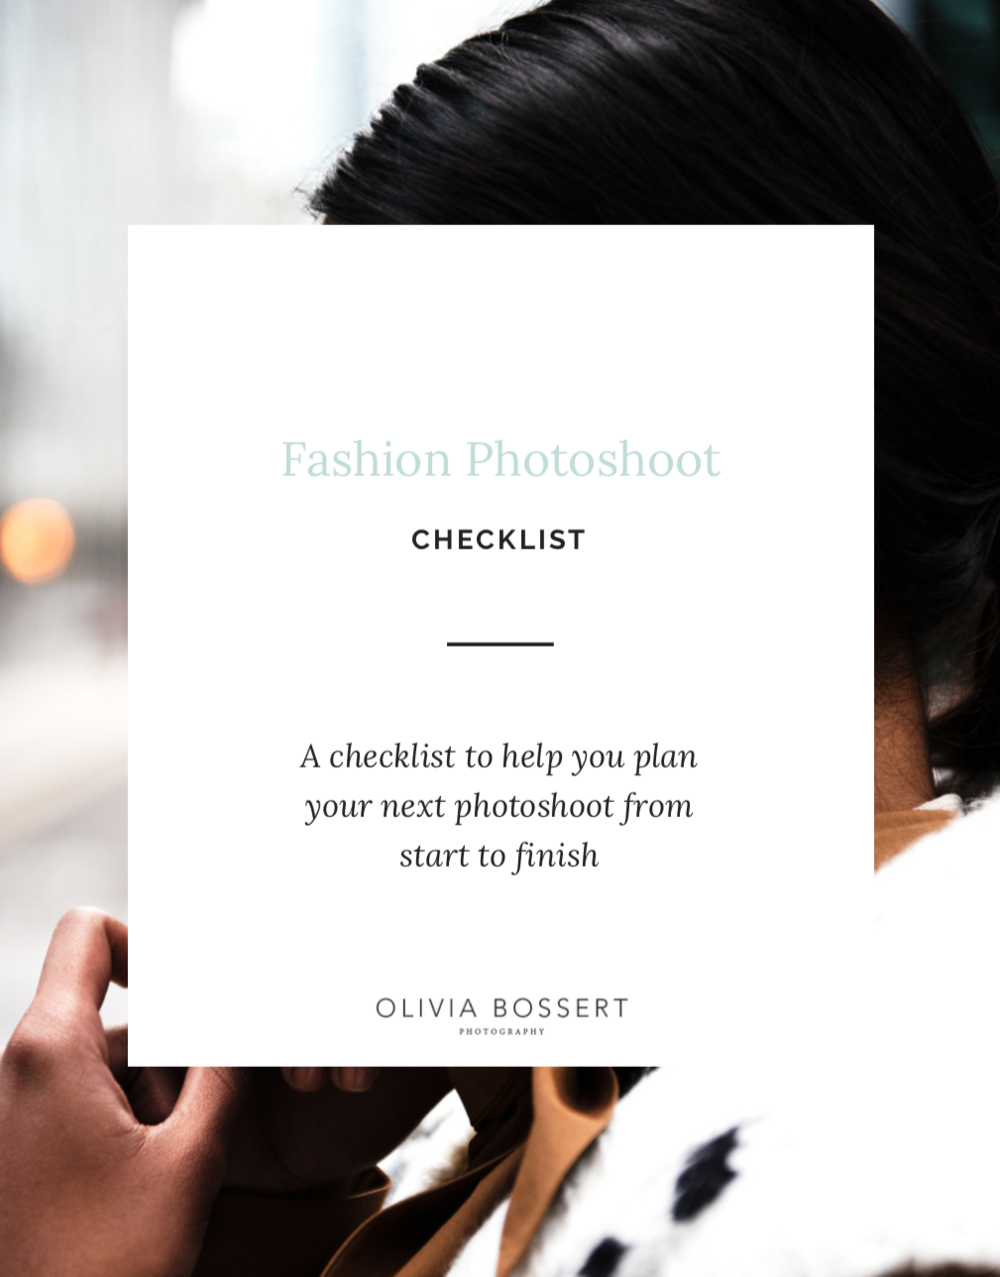 Free Fashion Photoshoot Checklist // Never Forget Anything Ever Again! // www.oliviabossert.com // fashion photography tips, fashion photographer, fashion, checklist, free download, freebie, free checklist, freelance photography, UK photographer, photography advice, photography help, photography mentor